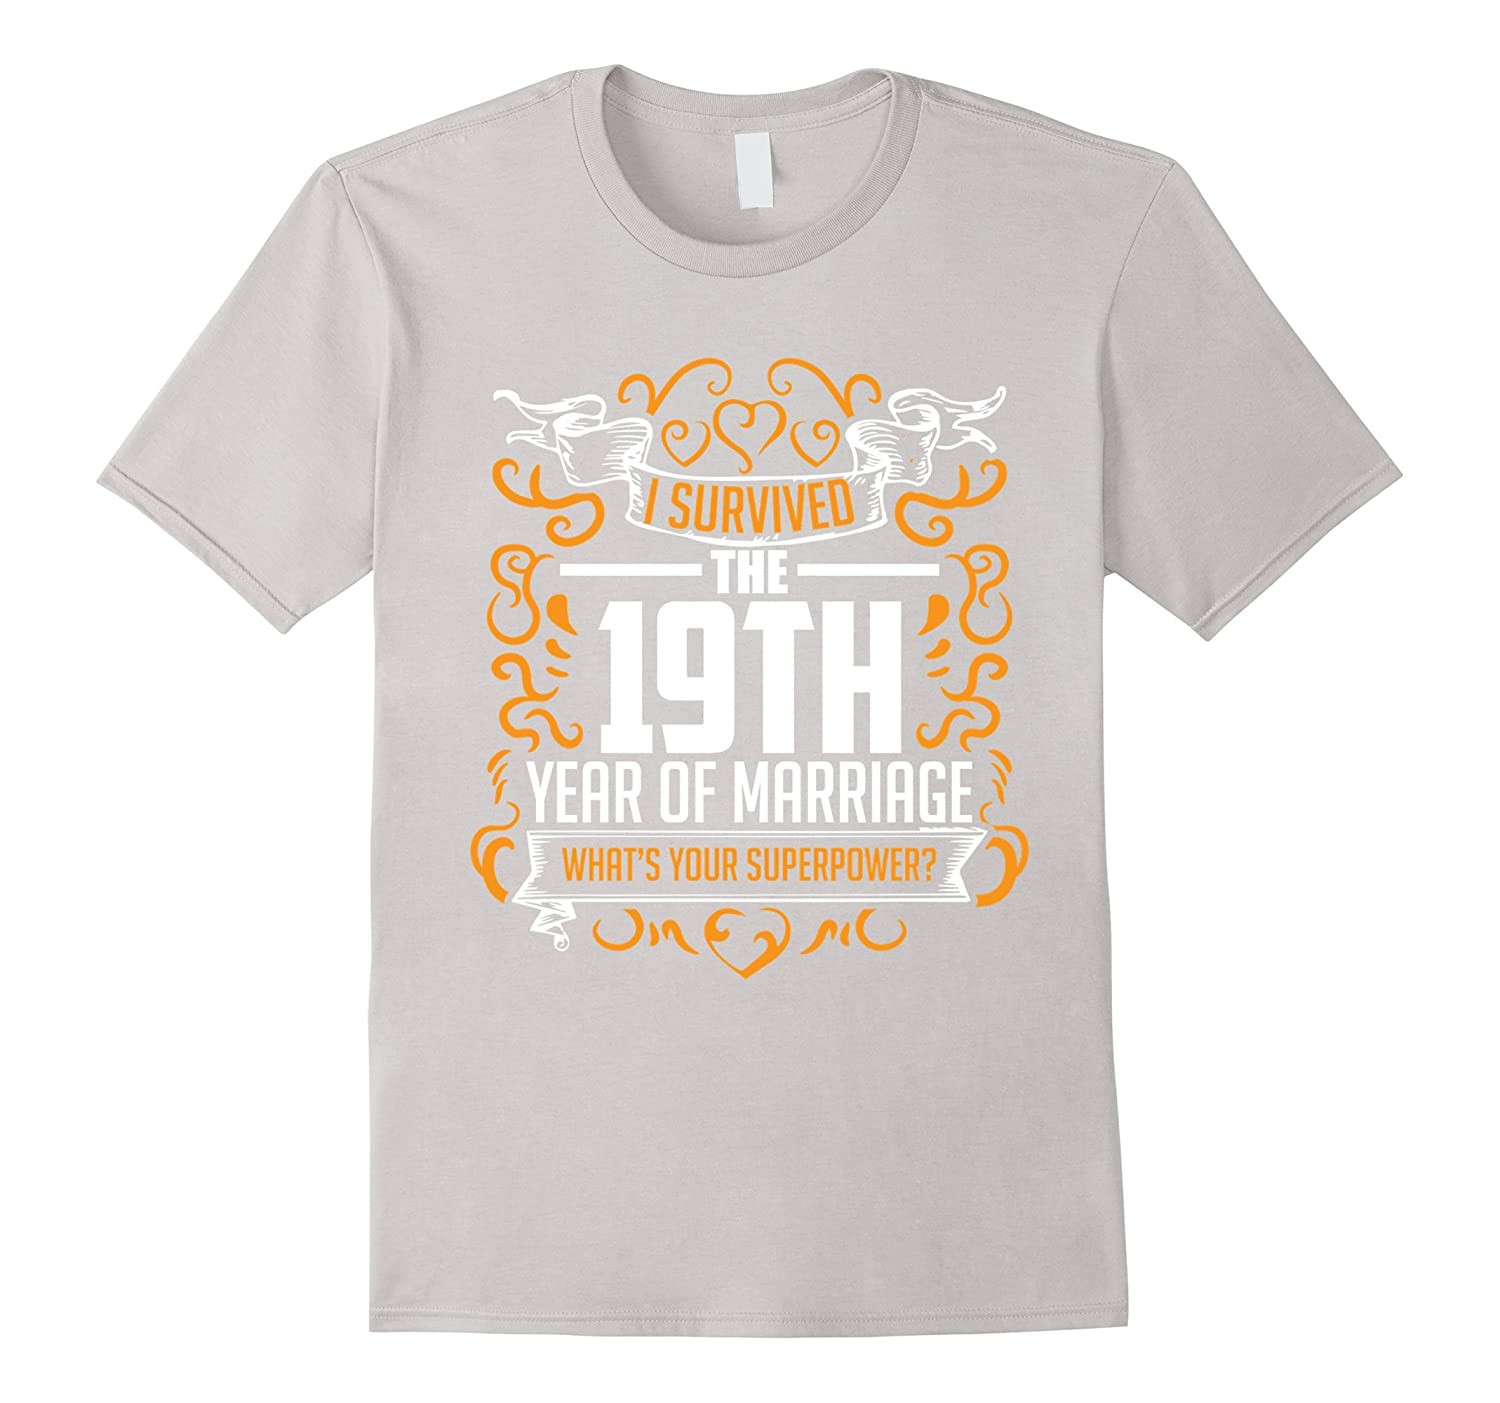 19Th Wedding Anniversary Gift Ideas For Him  19th Wedding Anniversary Gifts 19 Year T Shirt For Her Him